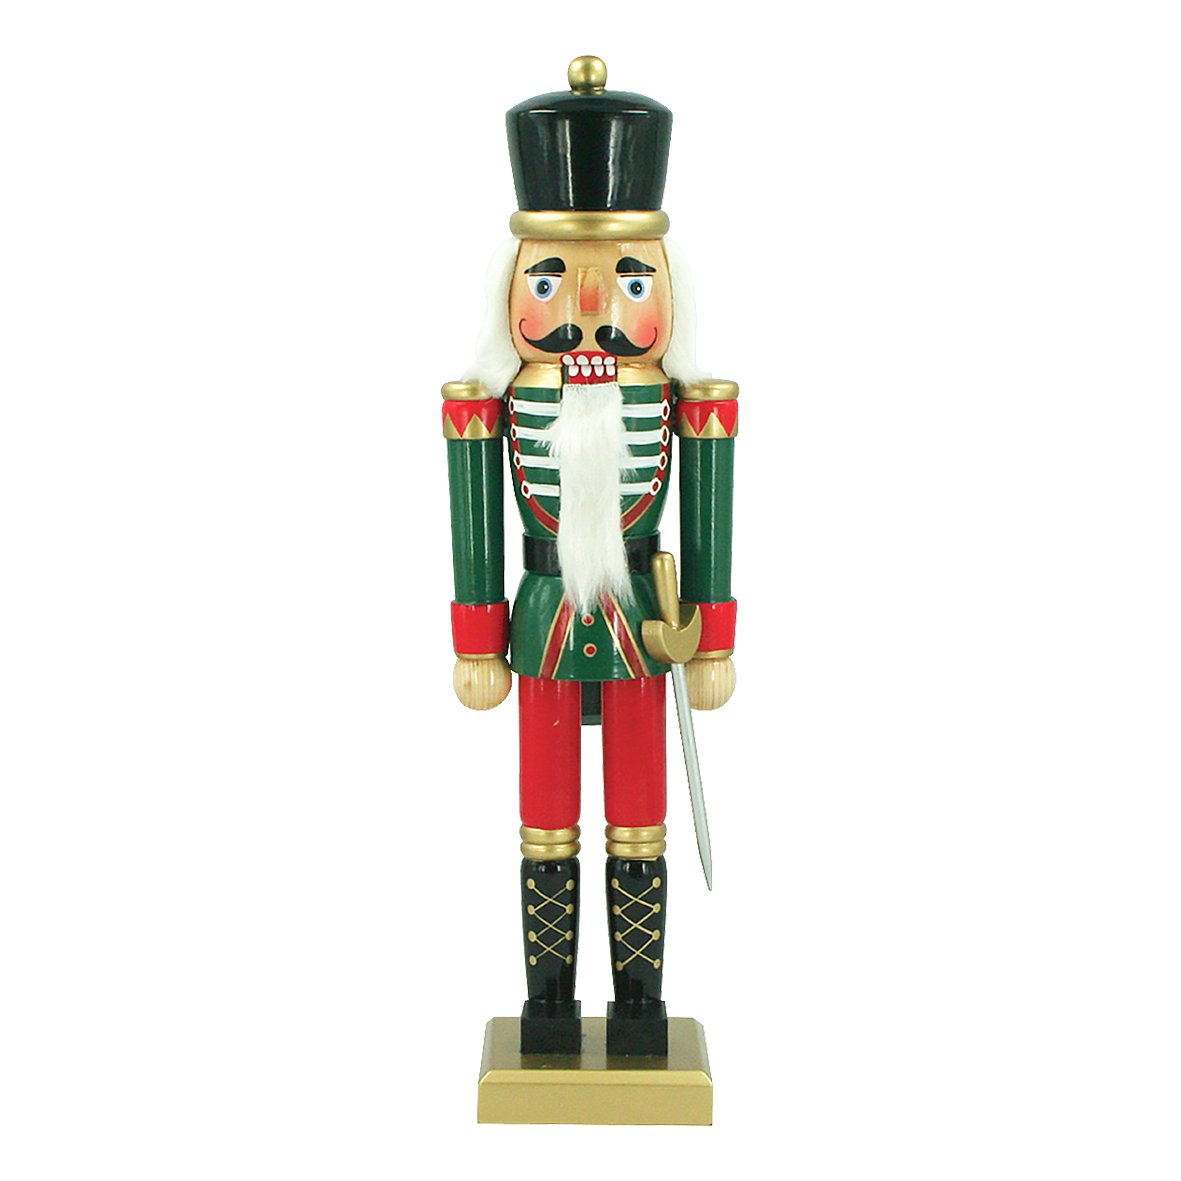 Christopher peacock home design products christopher for 4 foot nutcracker decoration